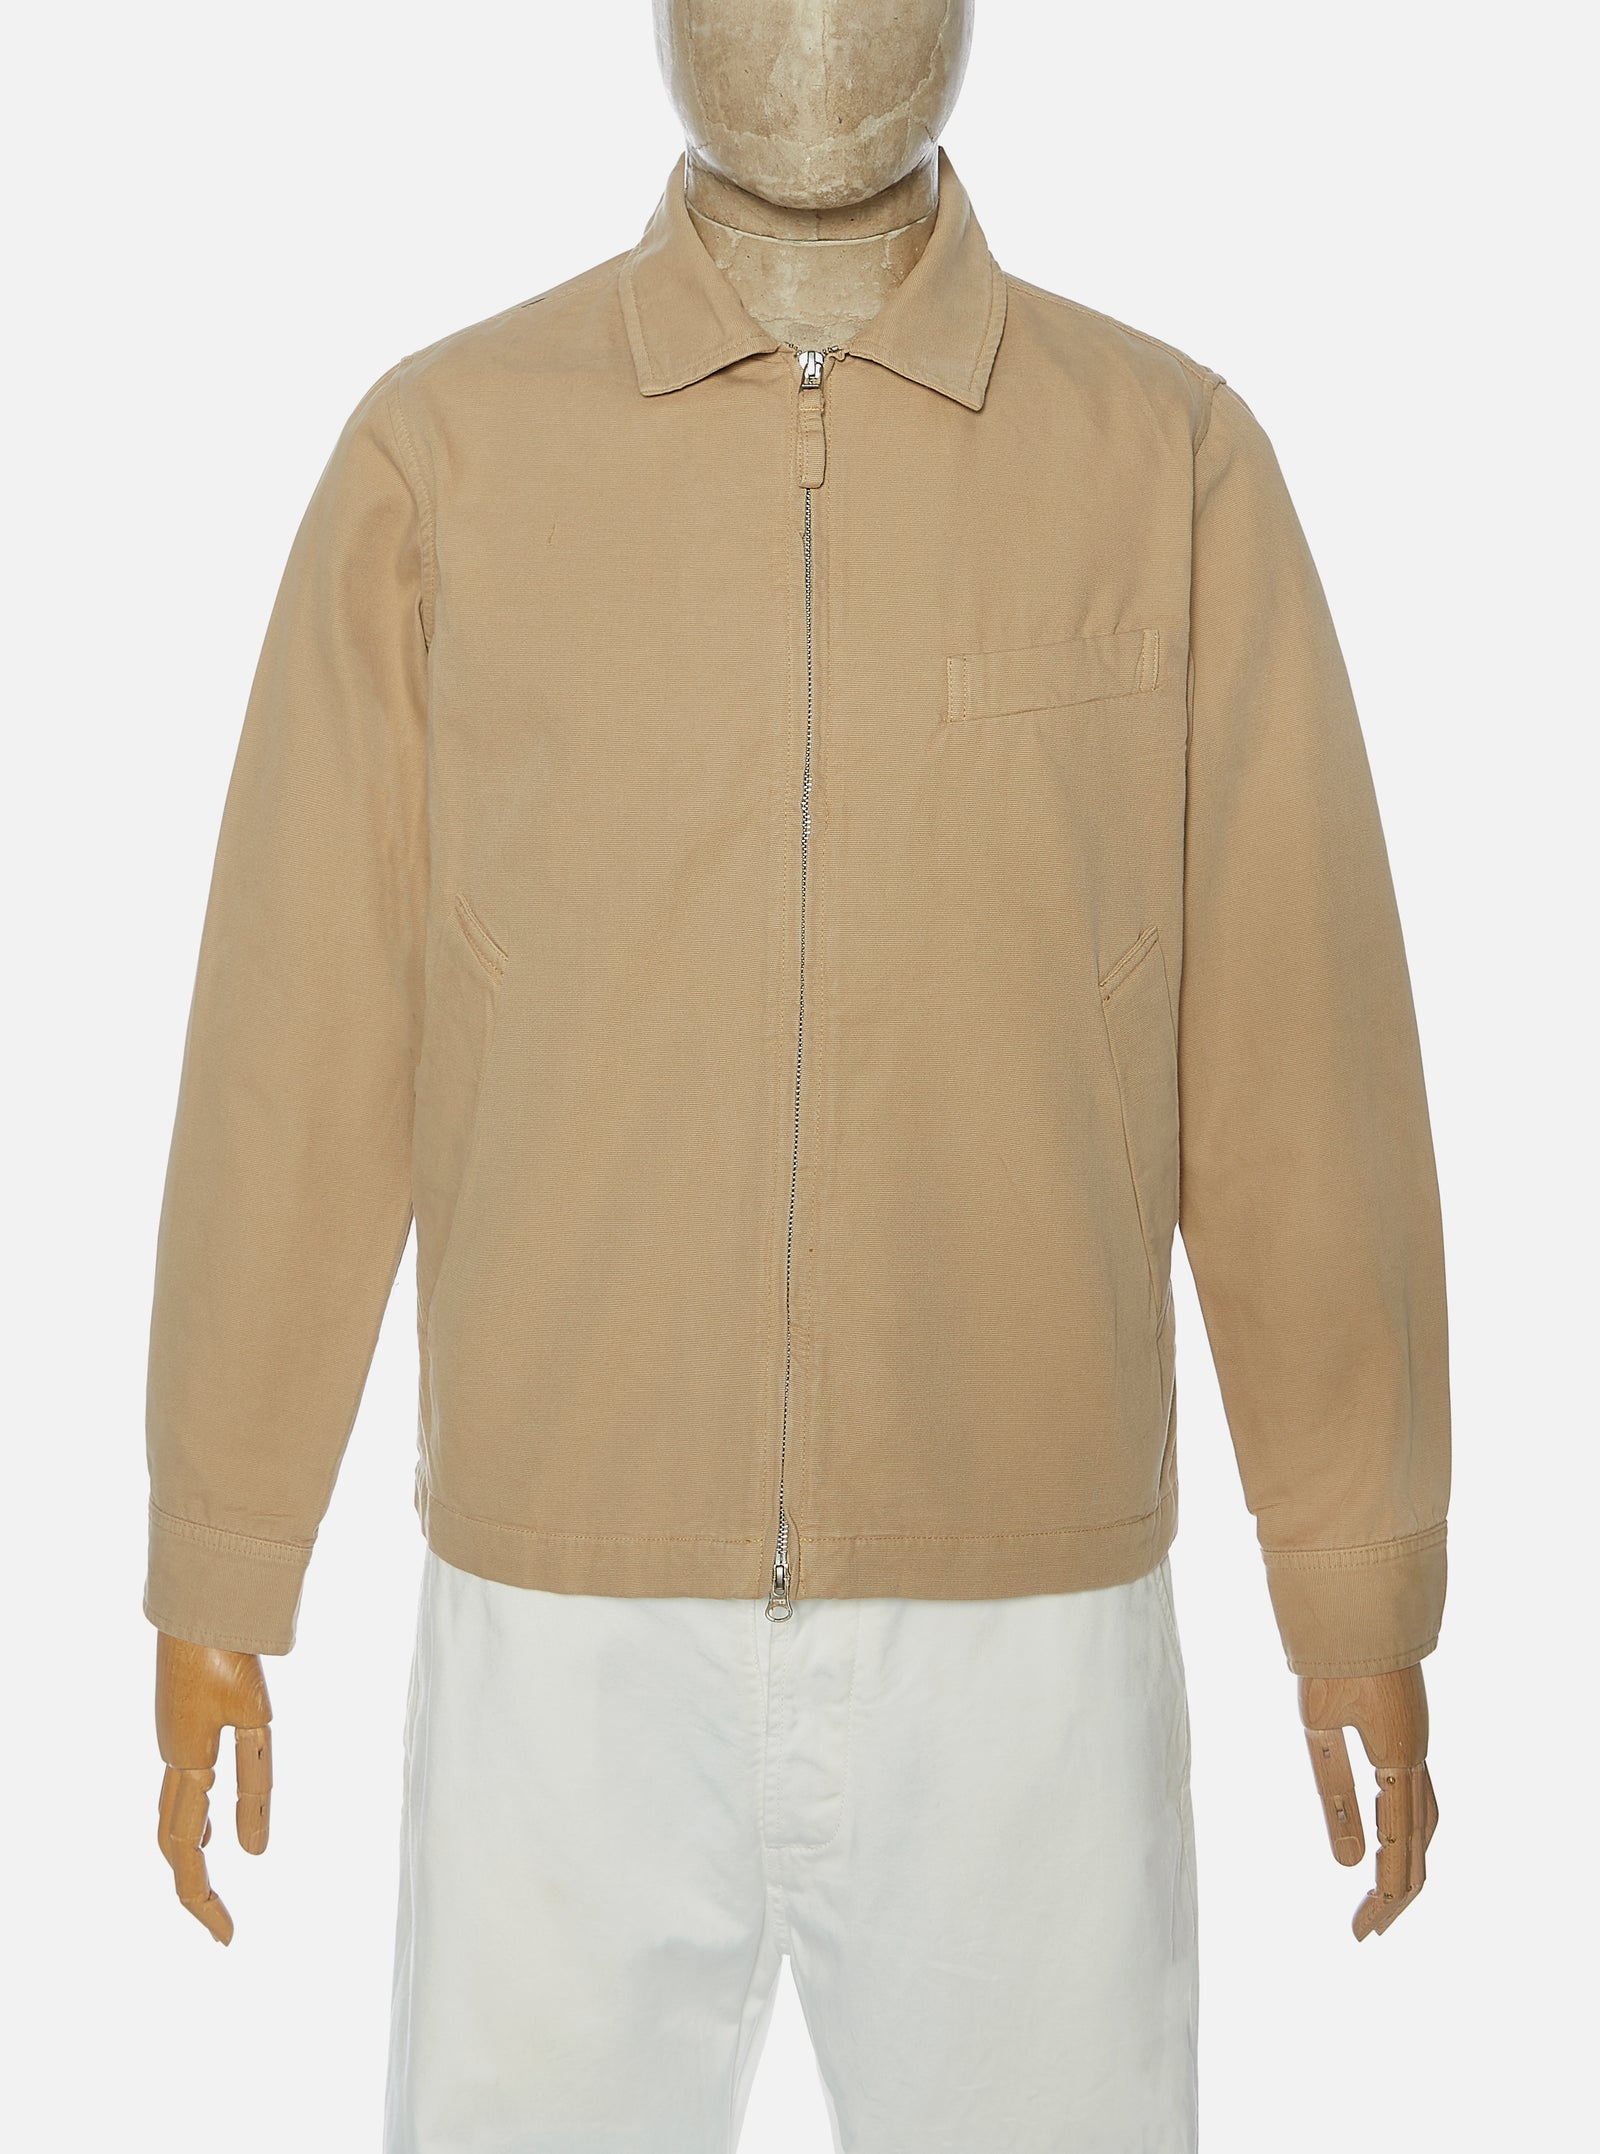 Universal Works Windcheater II Jacket in Sand Canvas